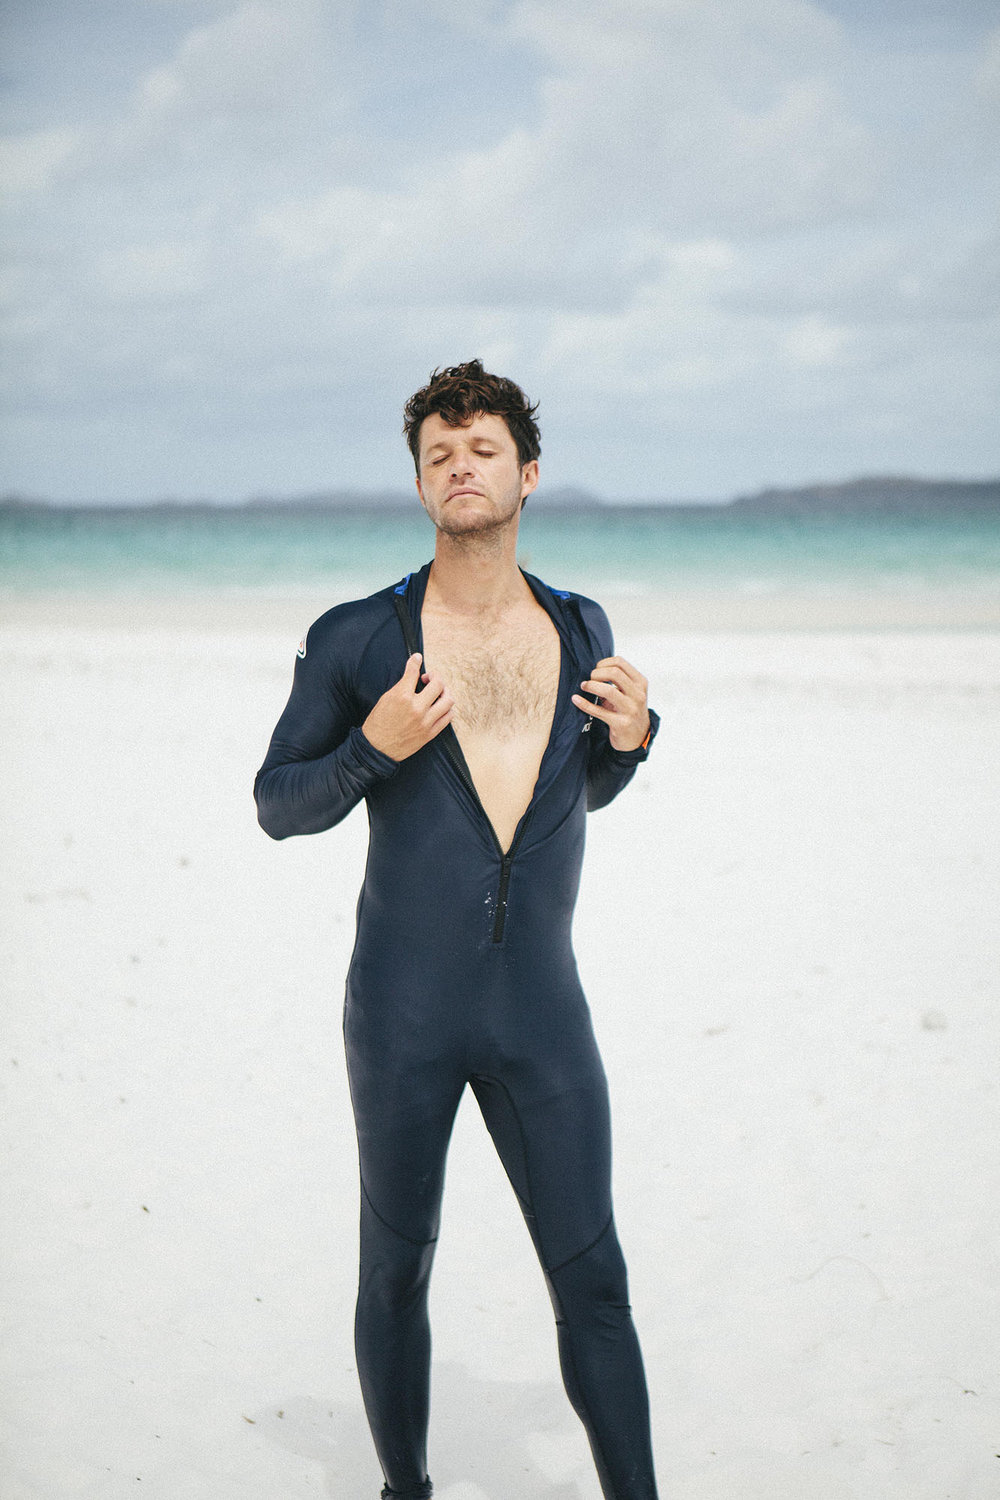 Dillon modelling the full body suit for stinger protection in the Whitsundays. Image by Places We Swim.